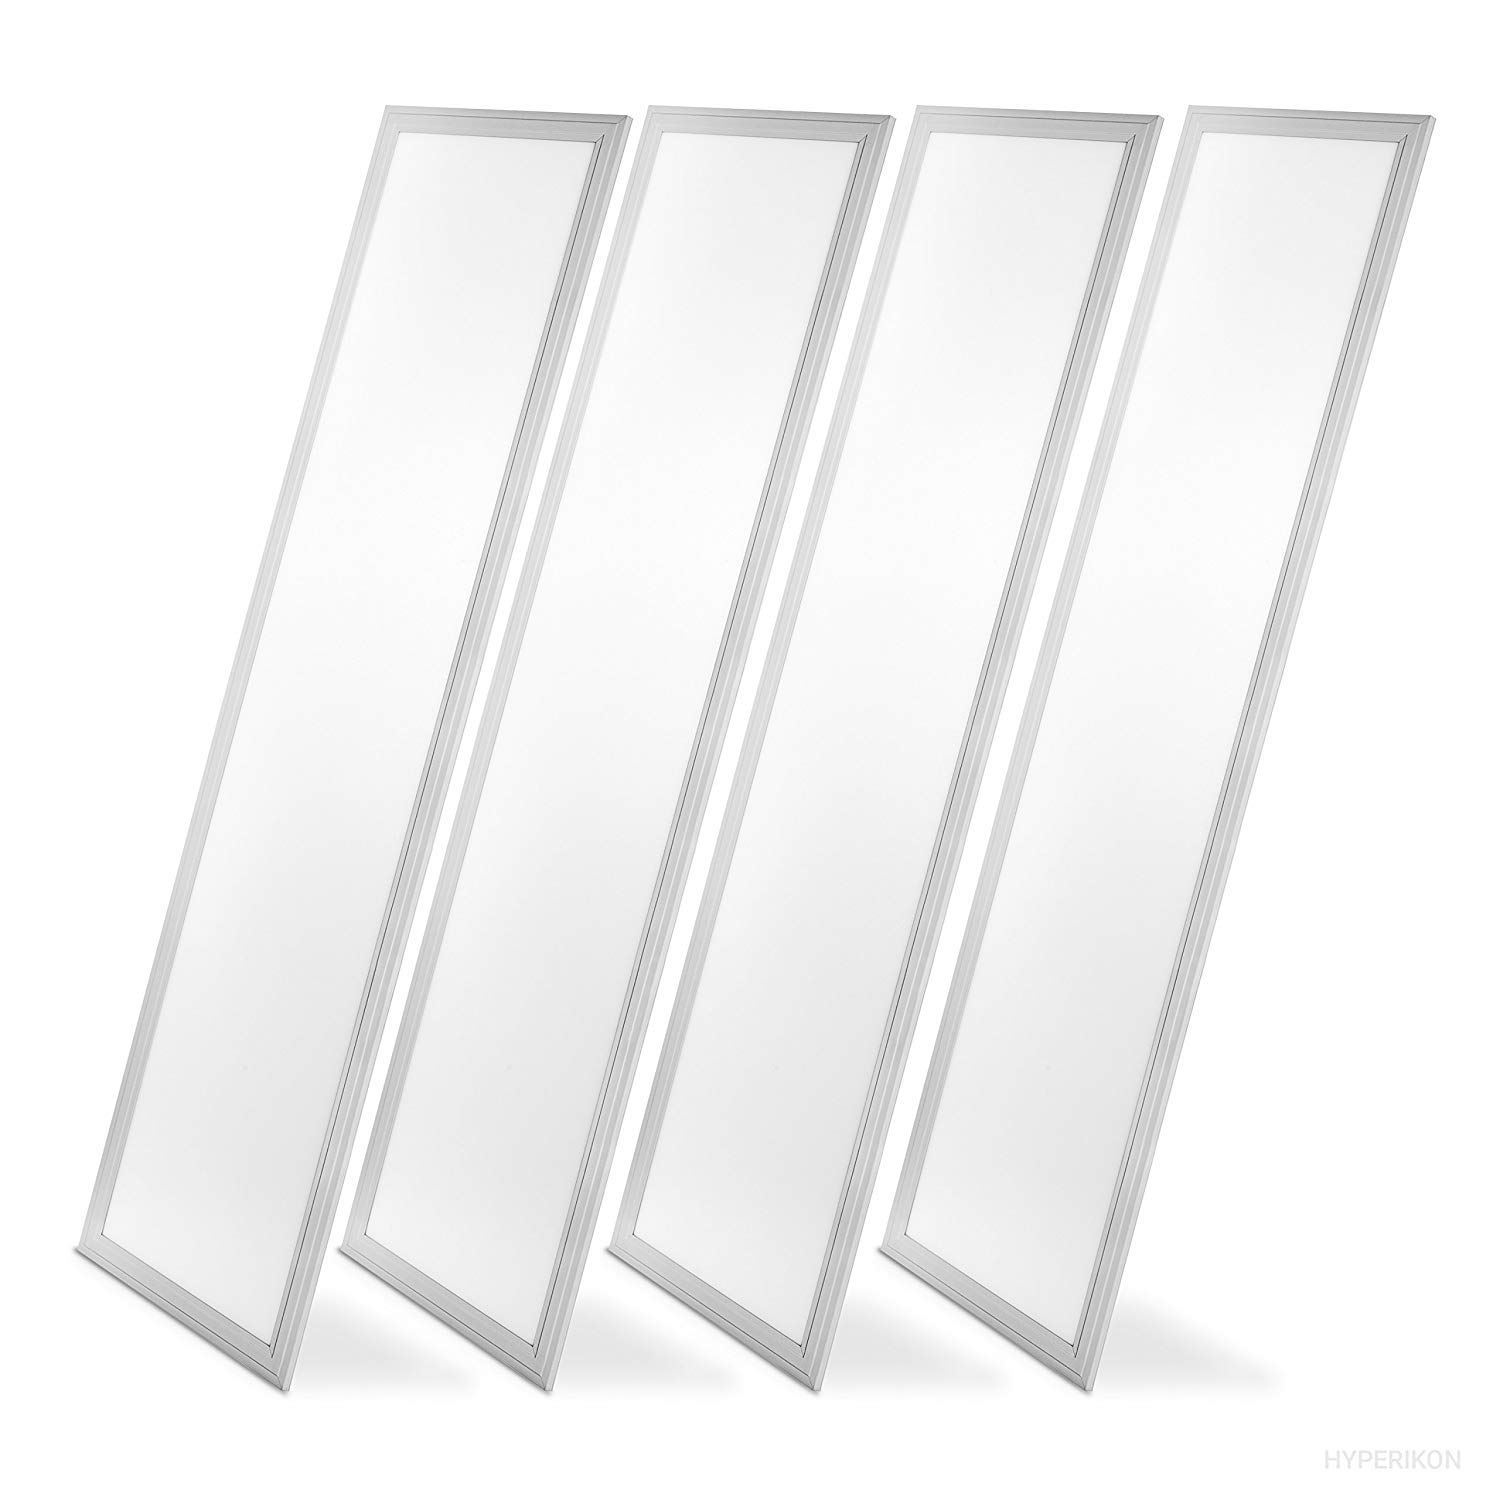 Hyperikon LED Troffer 1x4 Ft Panel Edge-Lit, Dimmable, 40W (100W Equivalency), 4000K Day Light, 4000 Lumens, Drop Ceiling Light, UL & DLC – Pack of 4